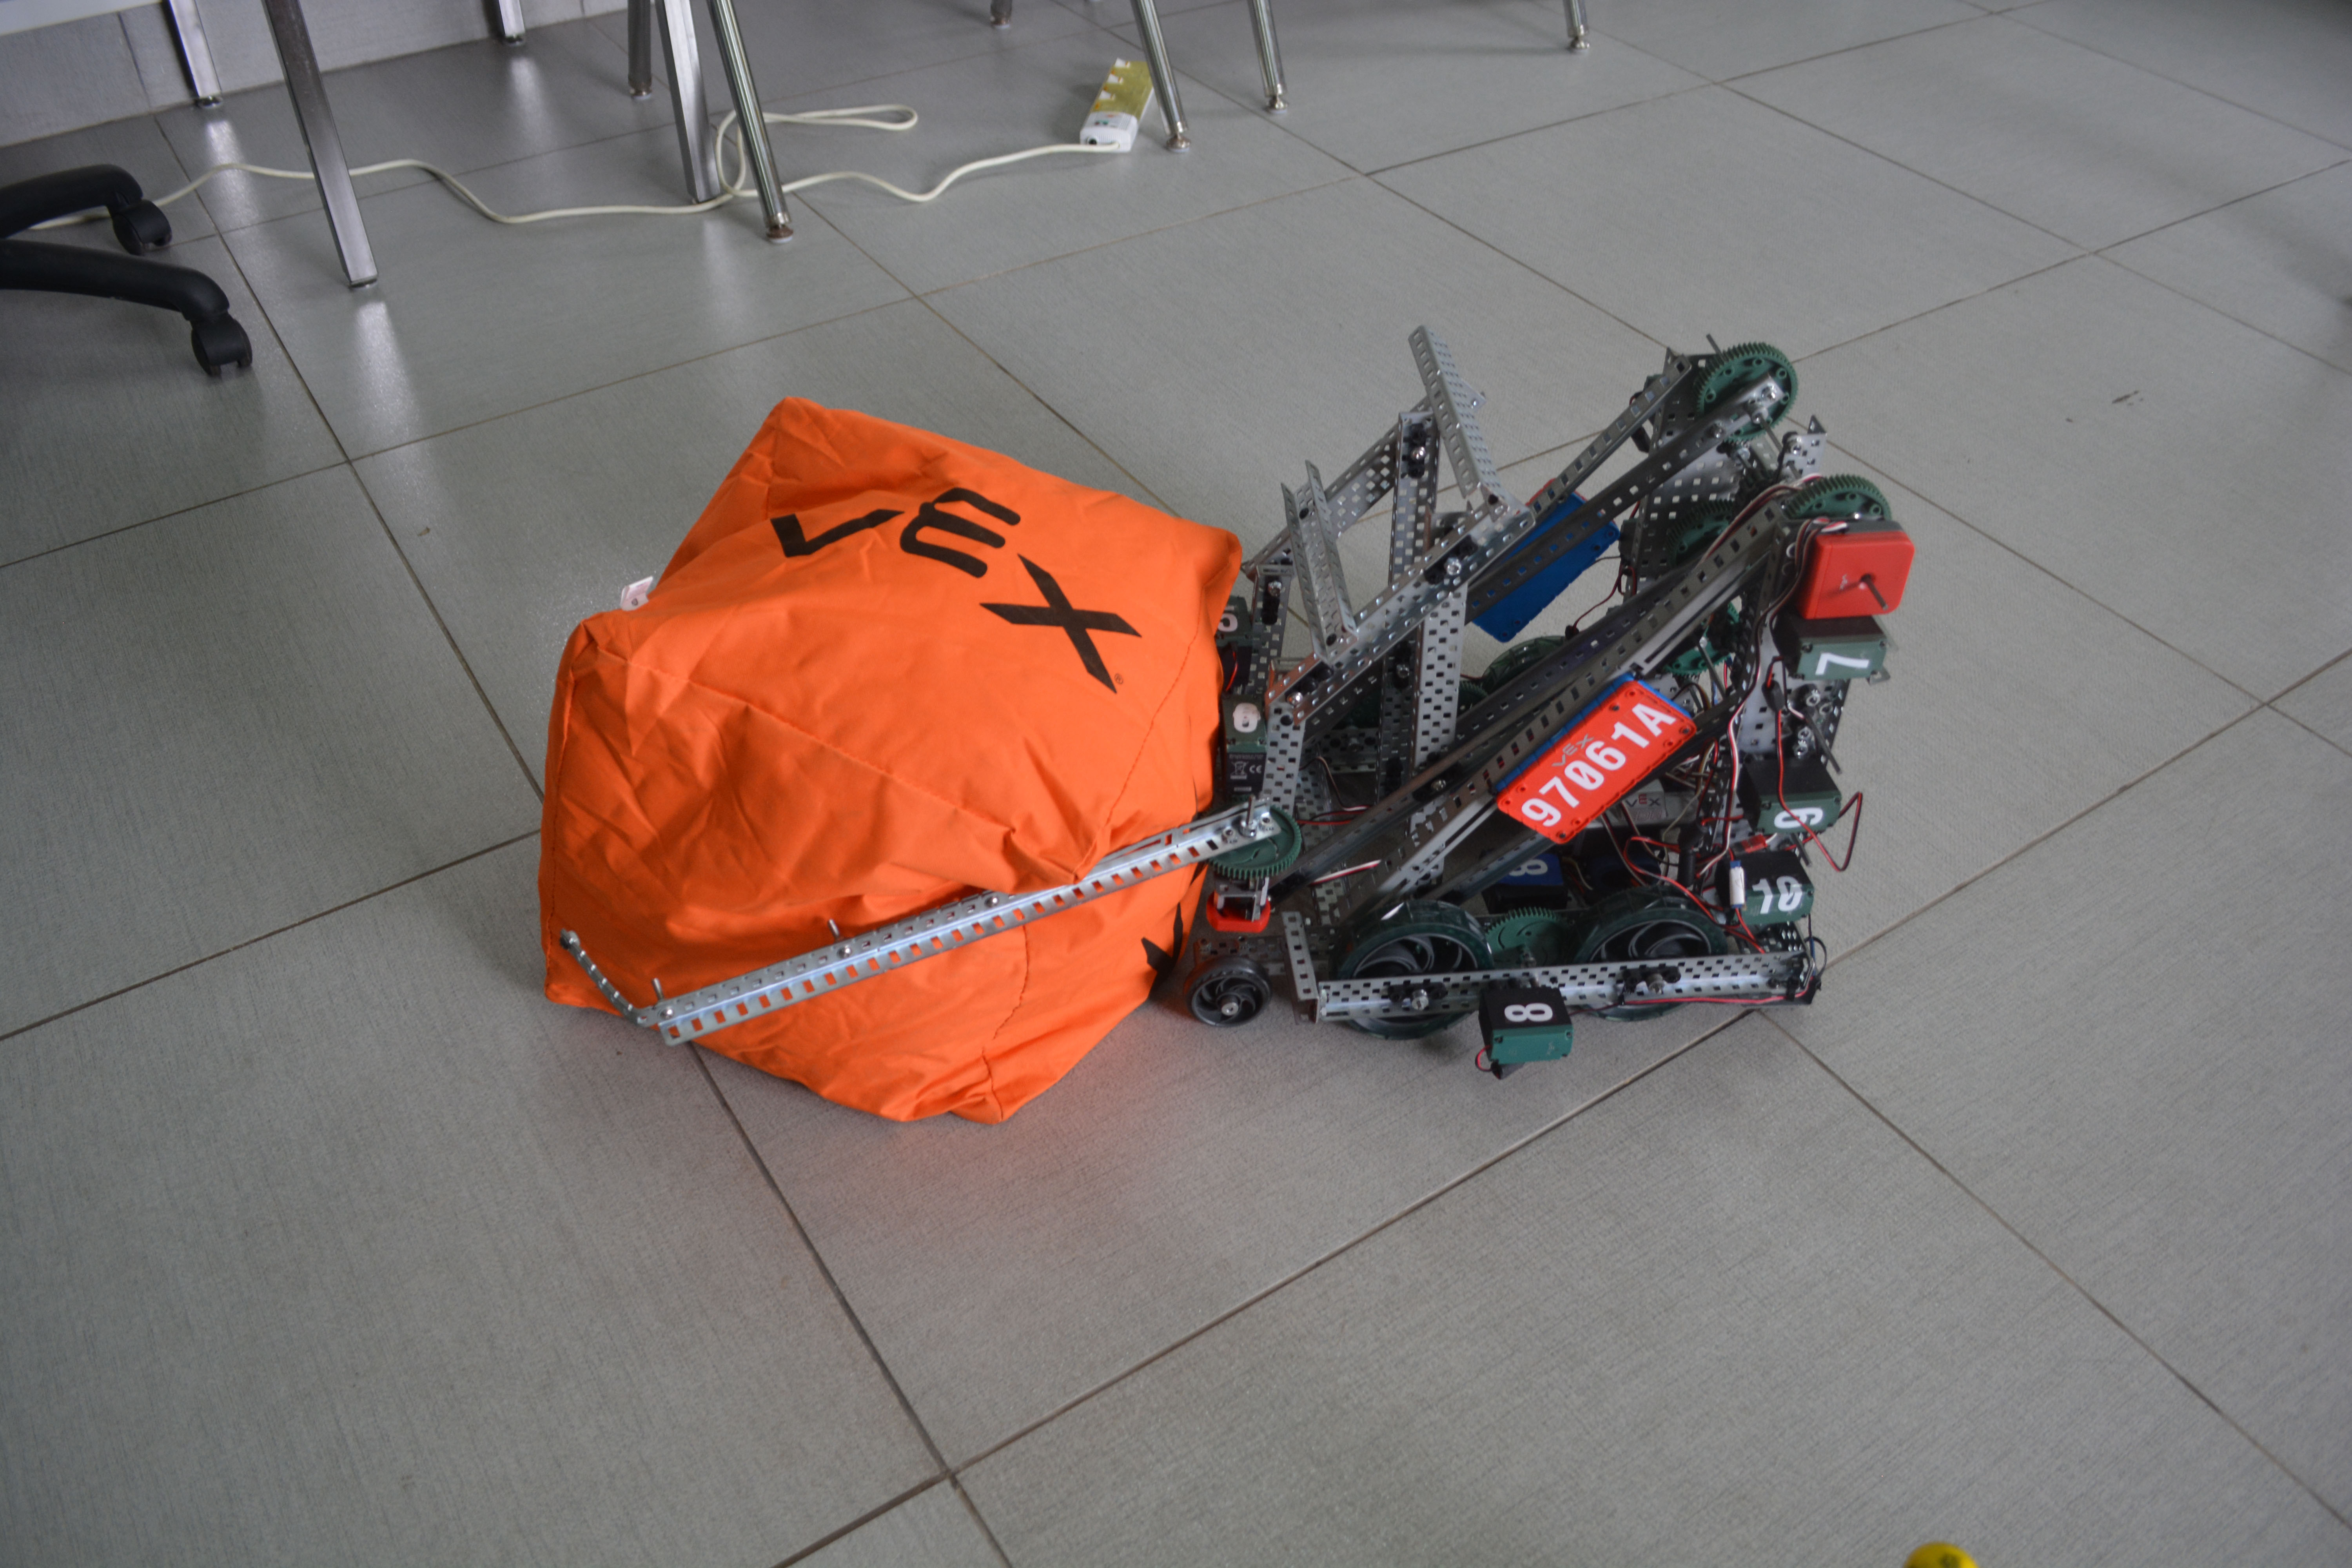 The Liger Robot showing off its ability to pick up the cube used in the VEX competition